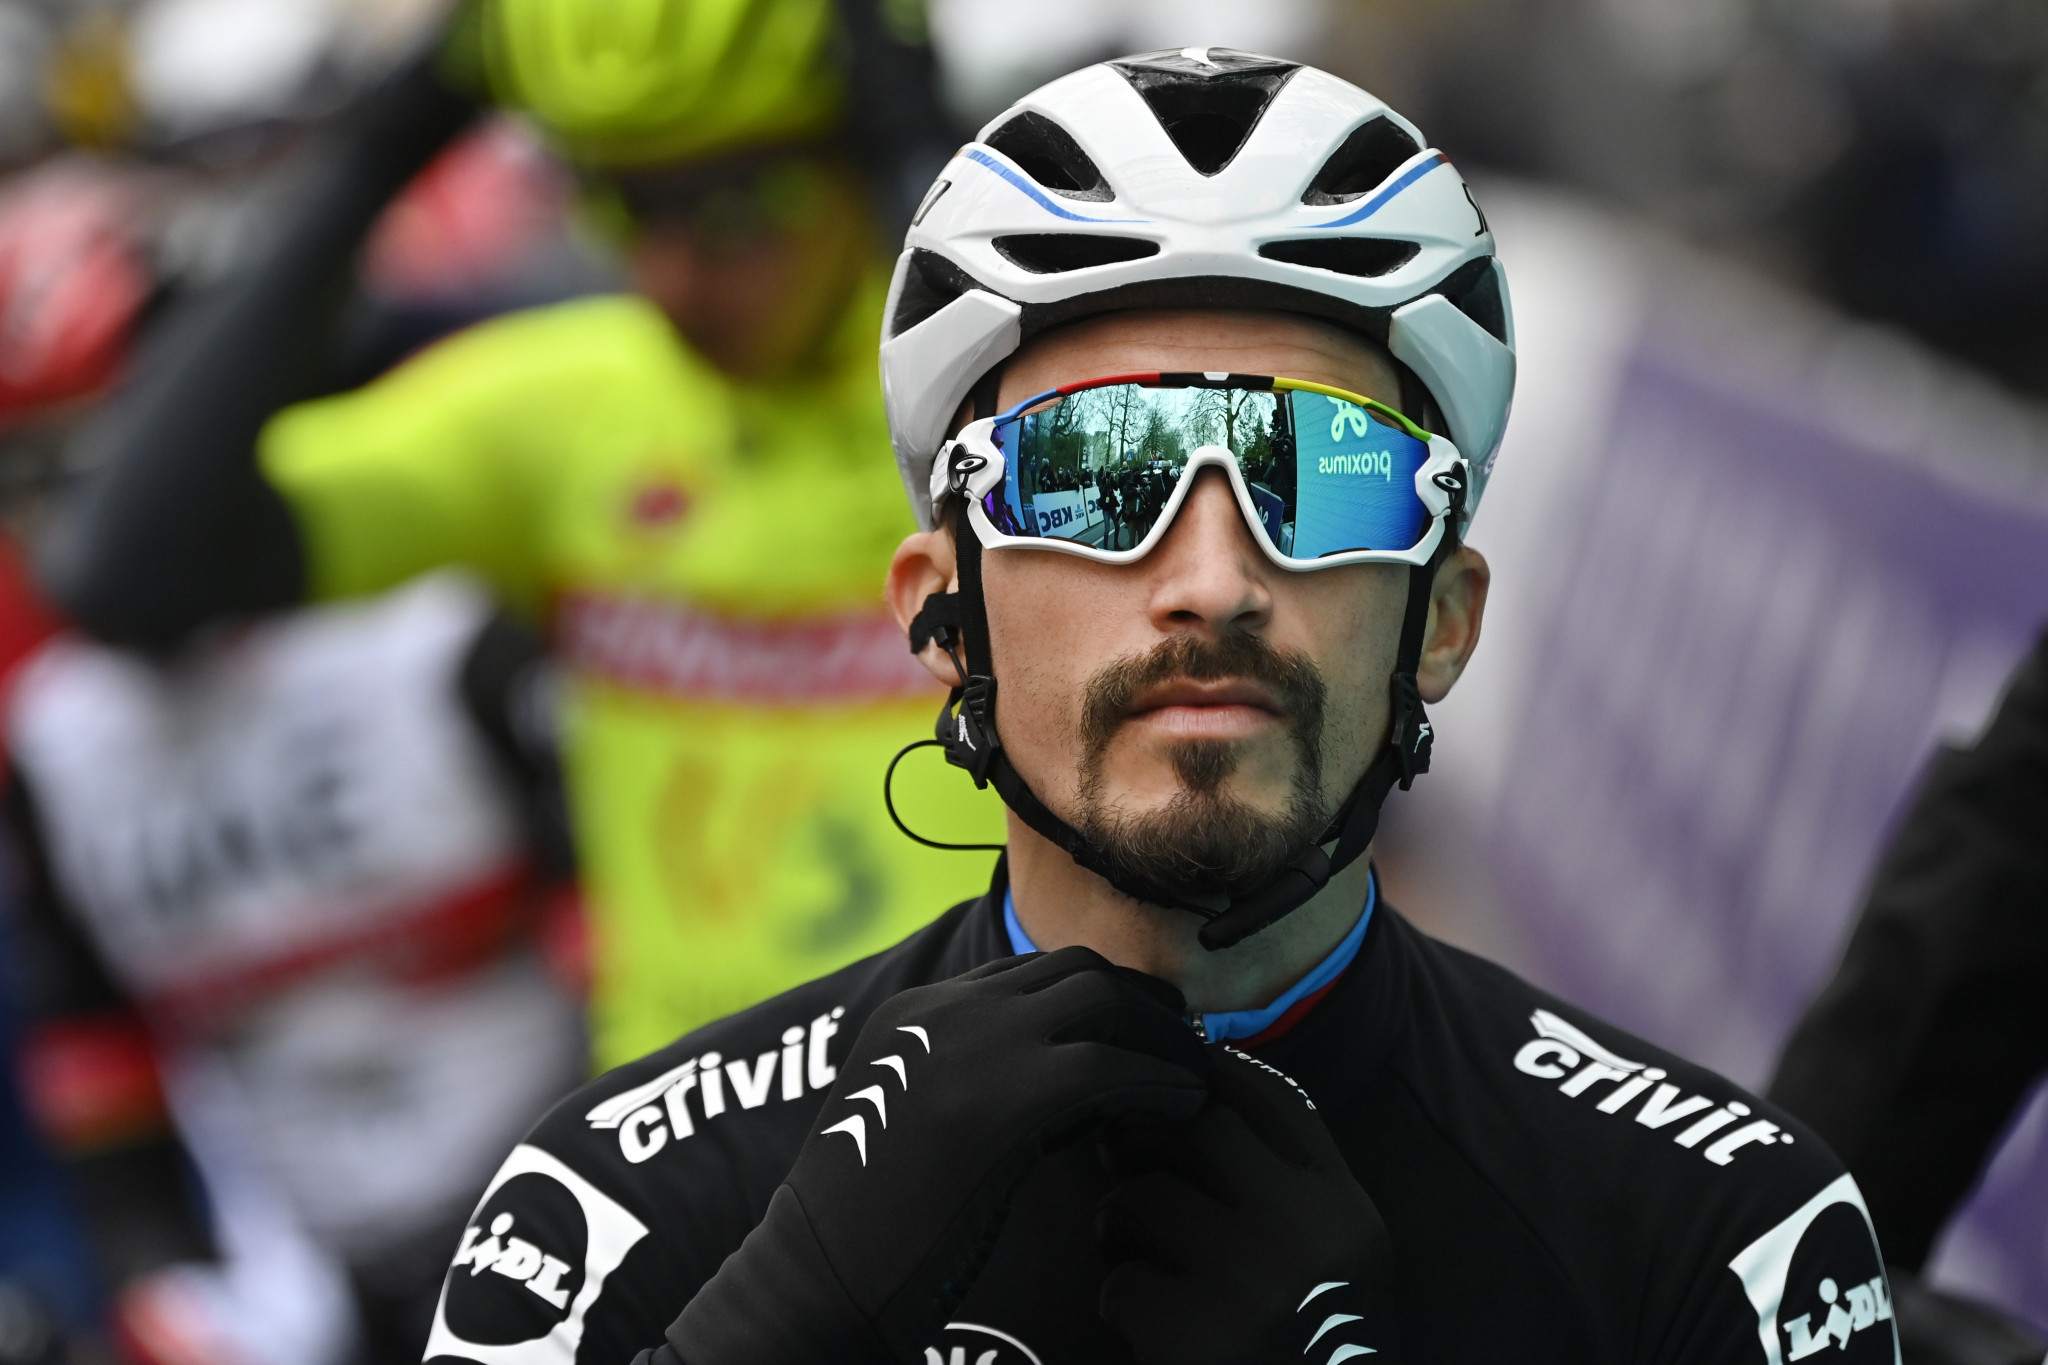 Alaphilippe chases down Almeida to win stage two of Tirreno-Adriatico